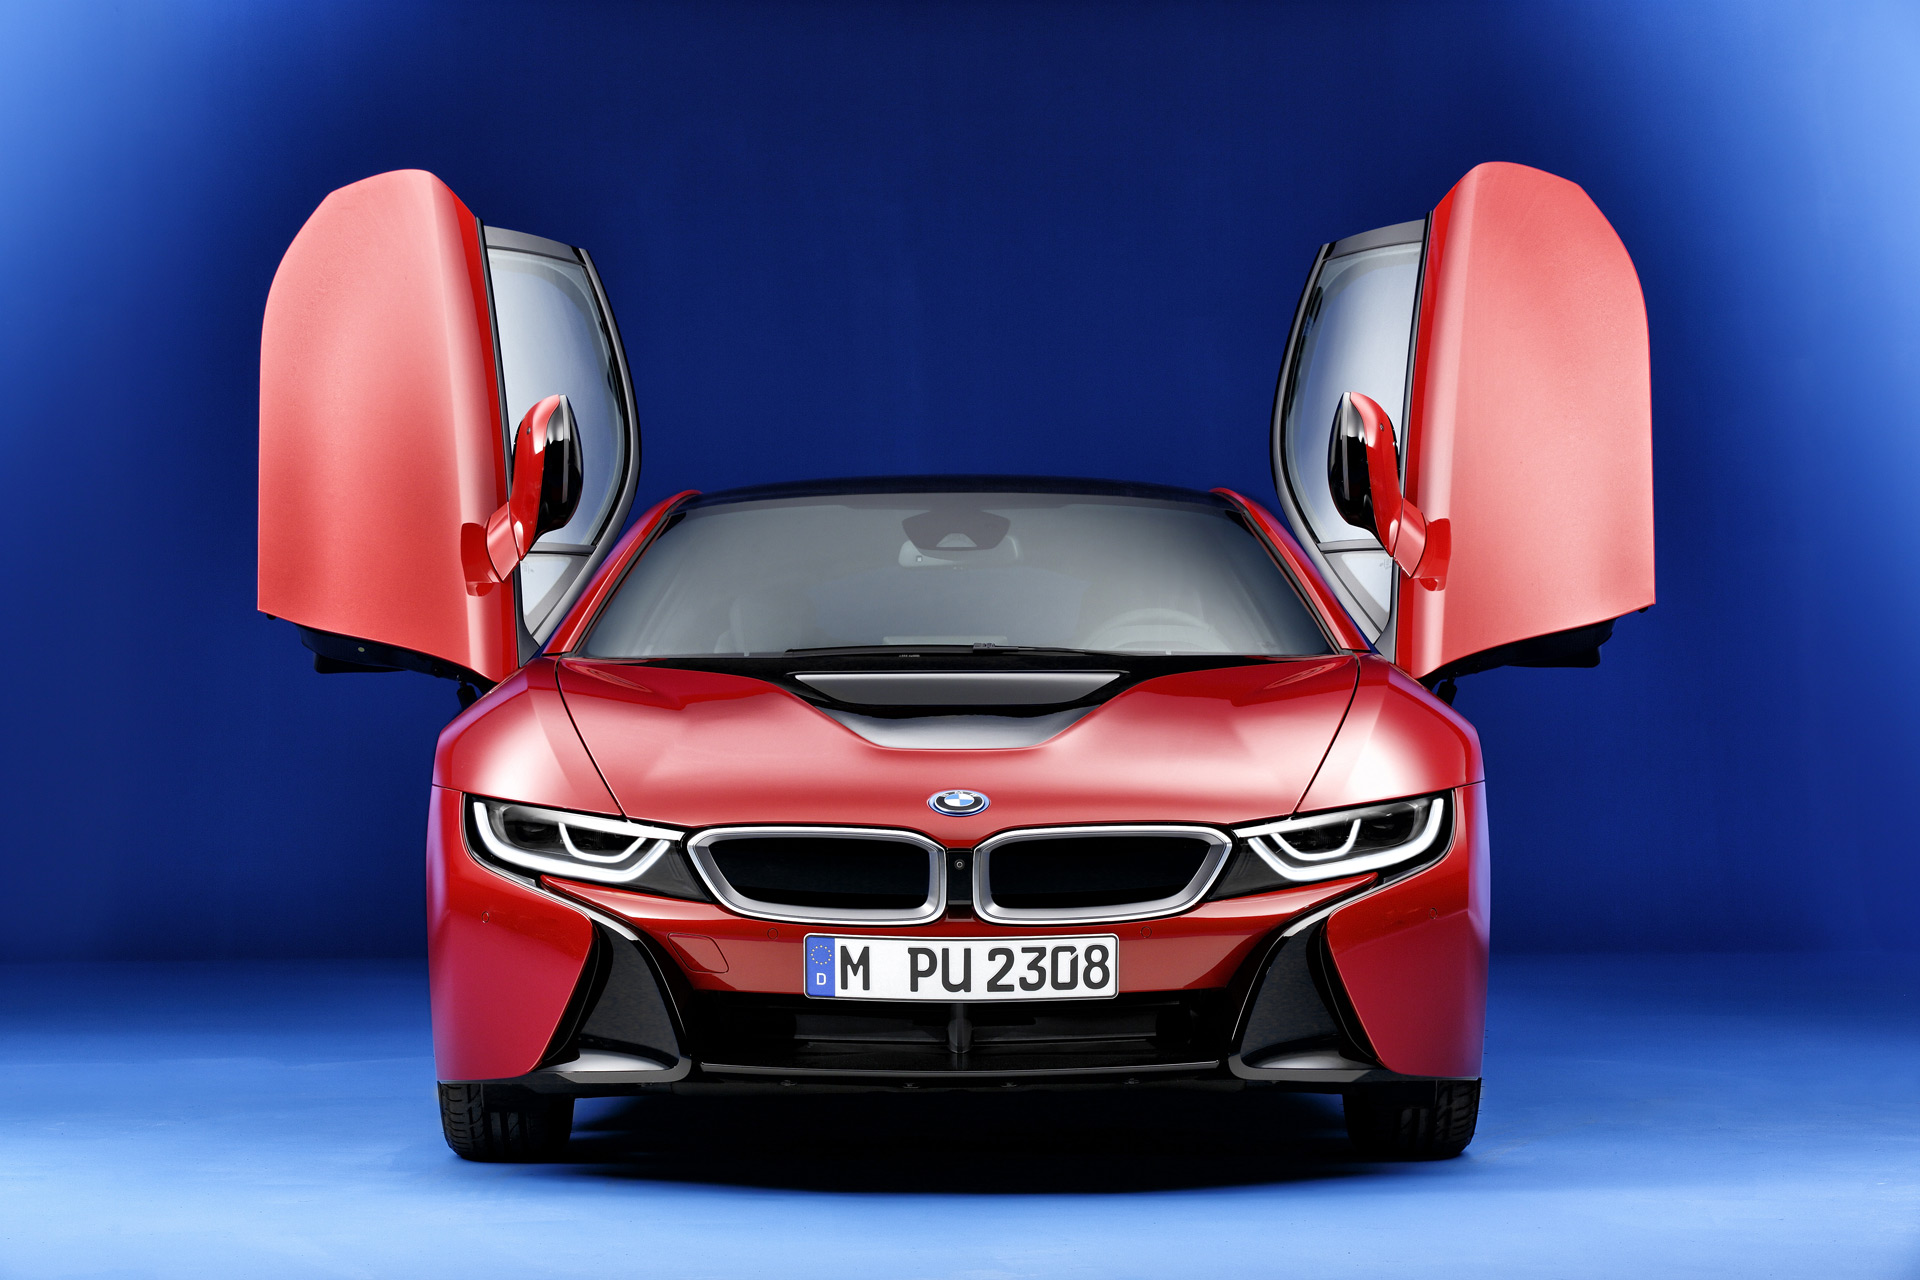 2016 Bmw I8 Vs 2016 Tesla Model S Compare Cars